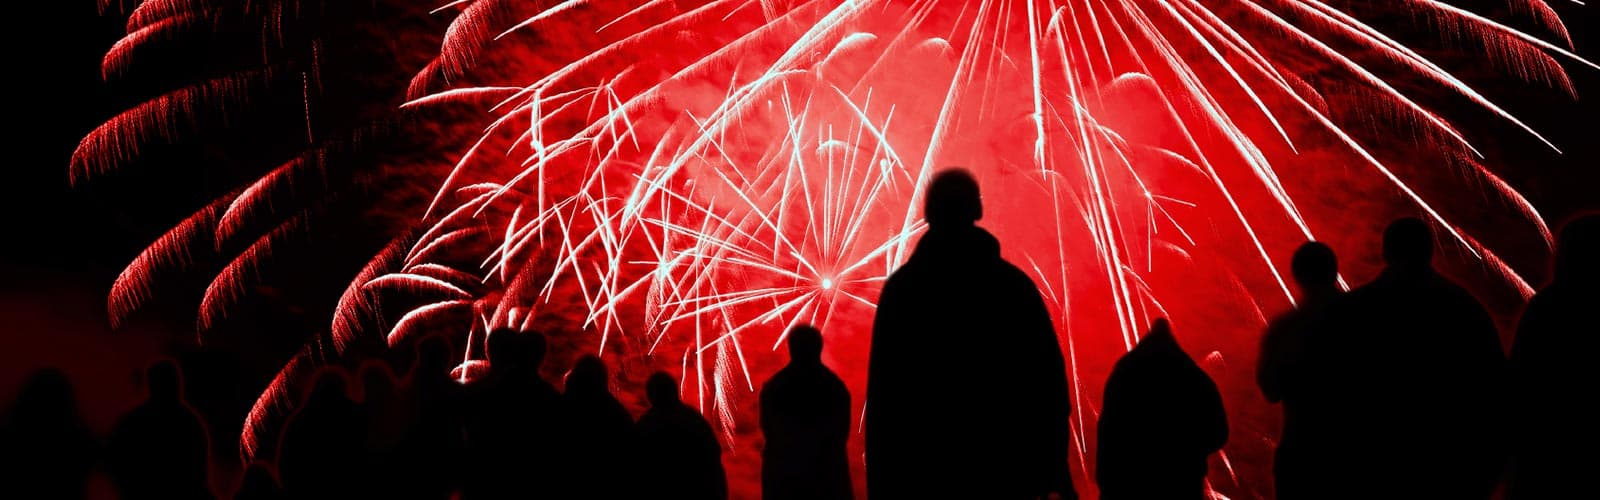 Iowans celebrating 4th of July with fireworks | Eye Saf